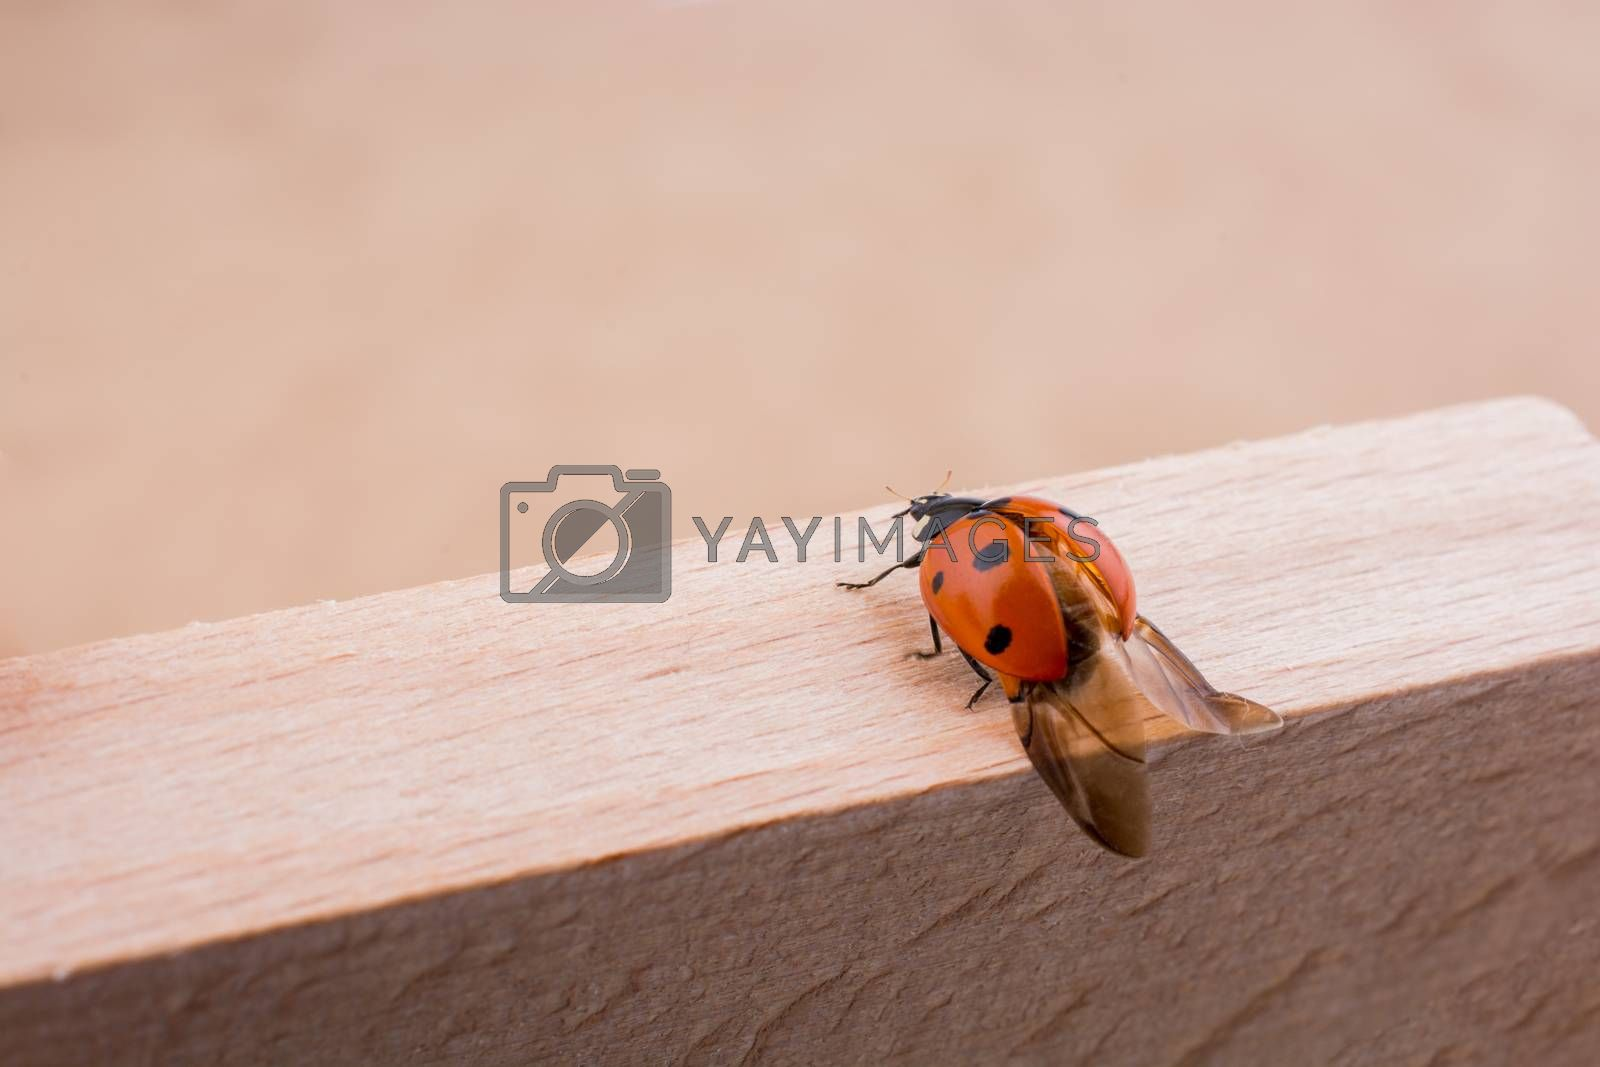 Beautiful photo of red ladybug walking on a piece of wood